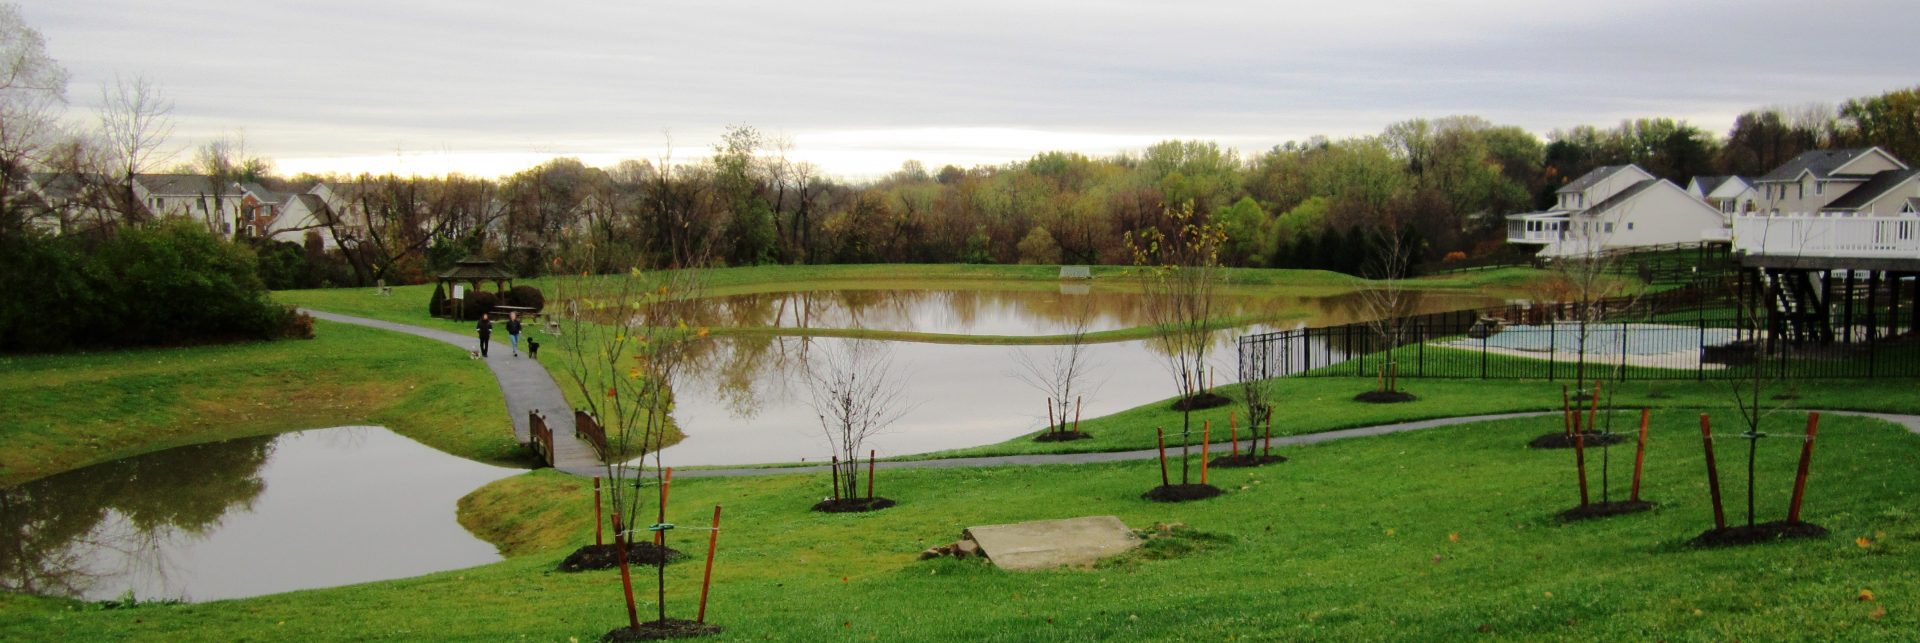 [Webcast] Bringing Green Stormwater Research to Practice